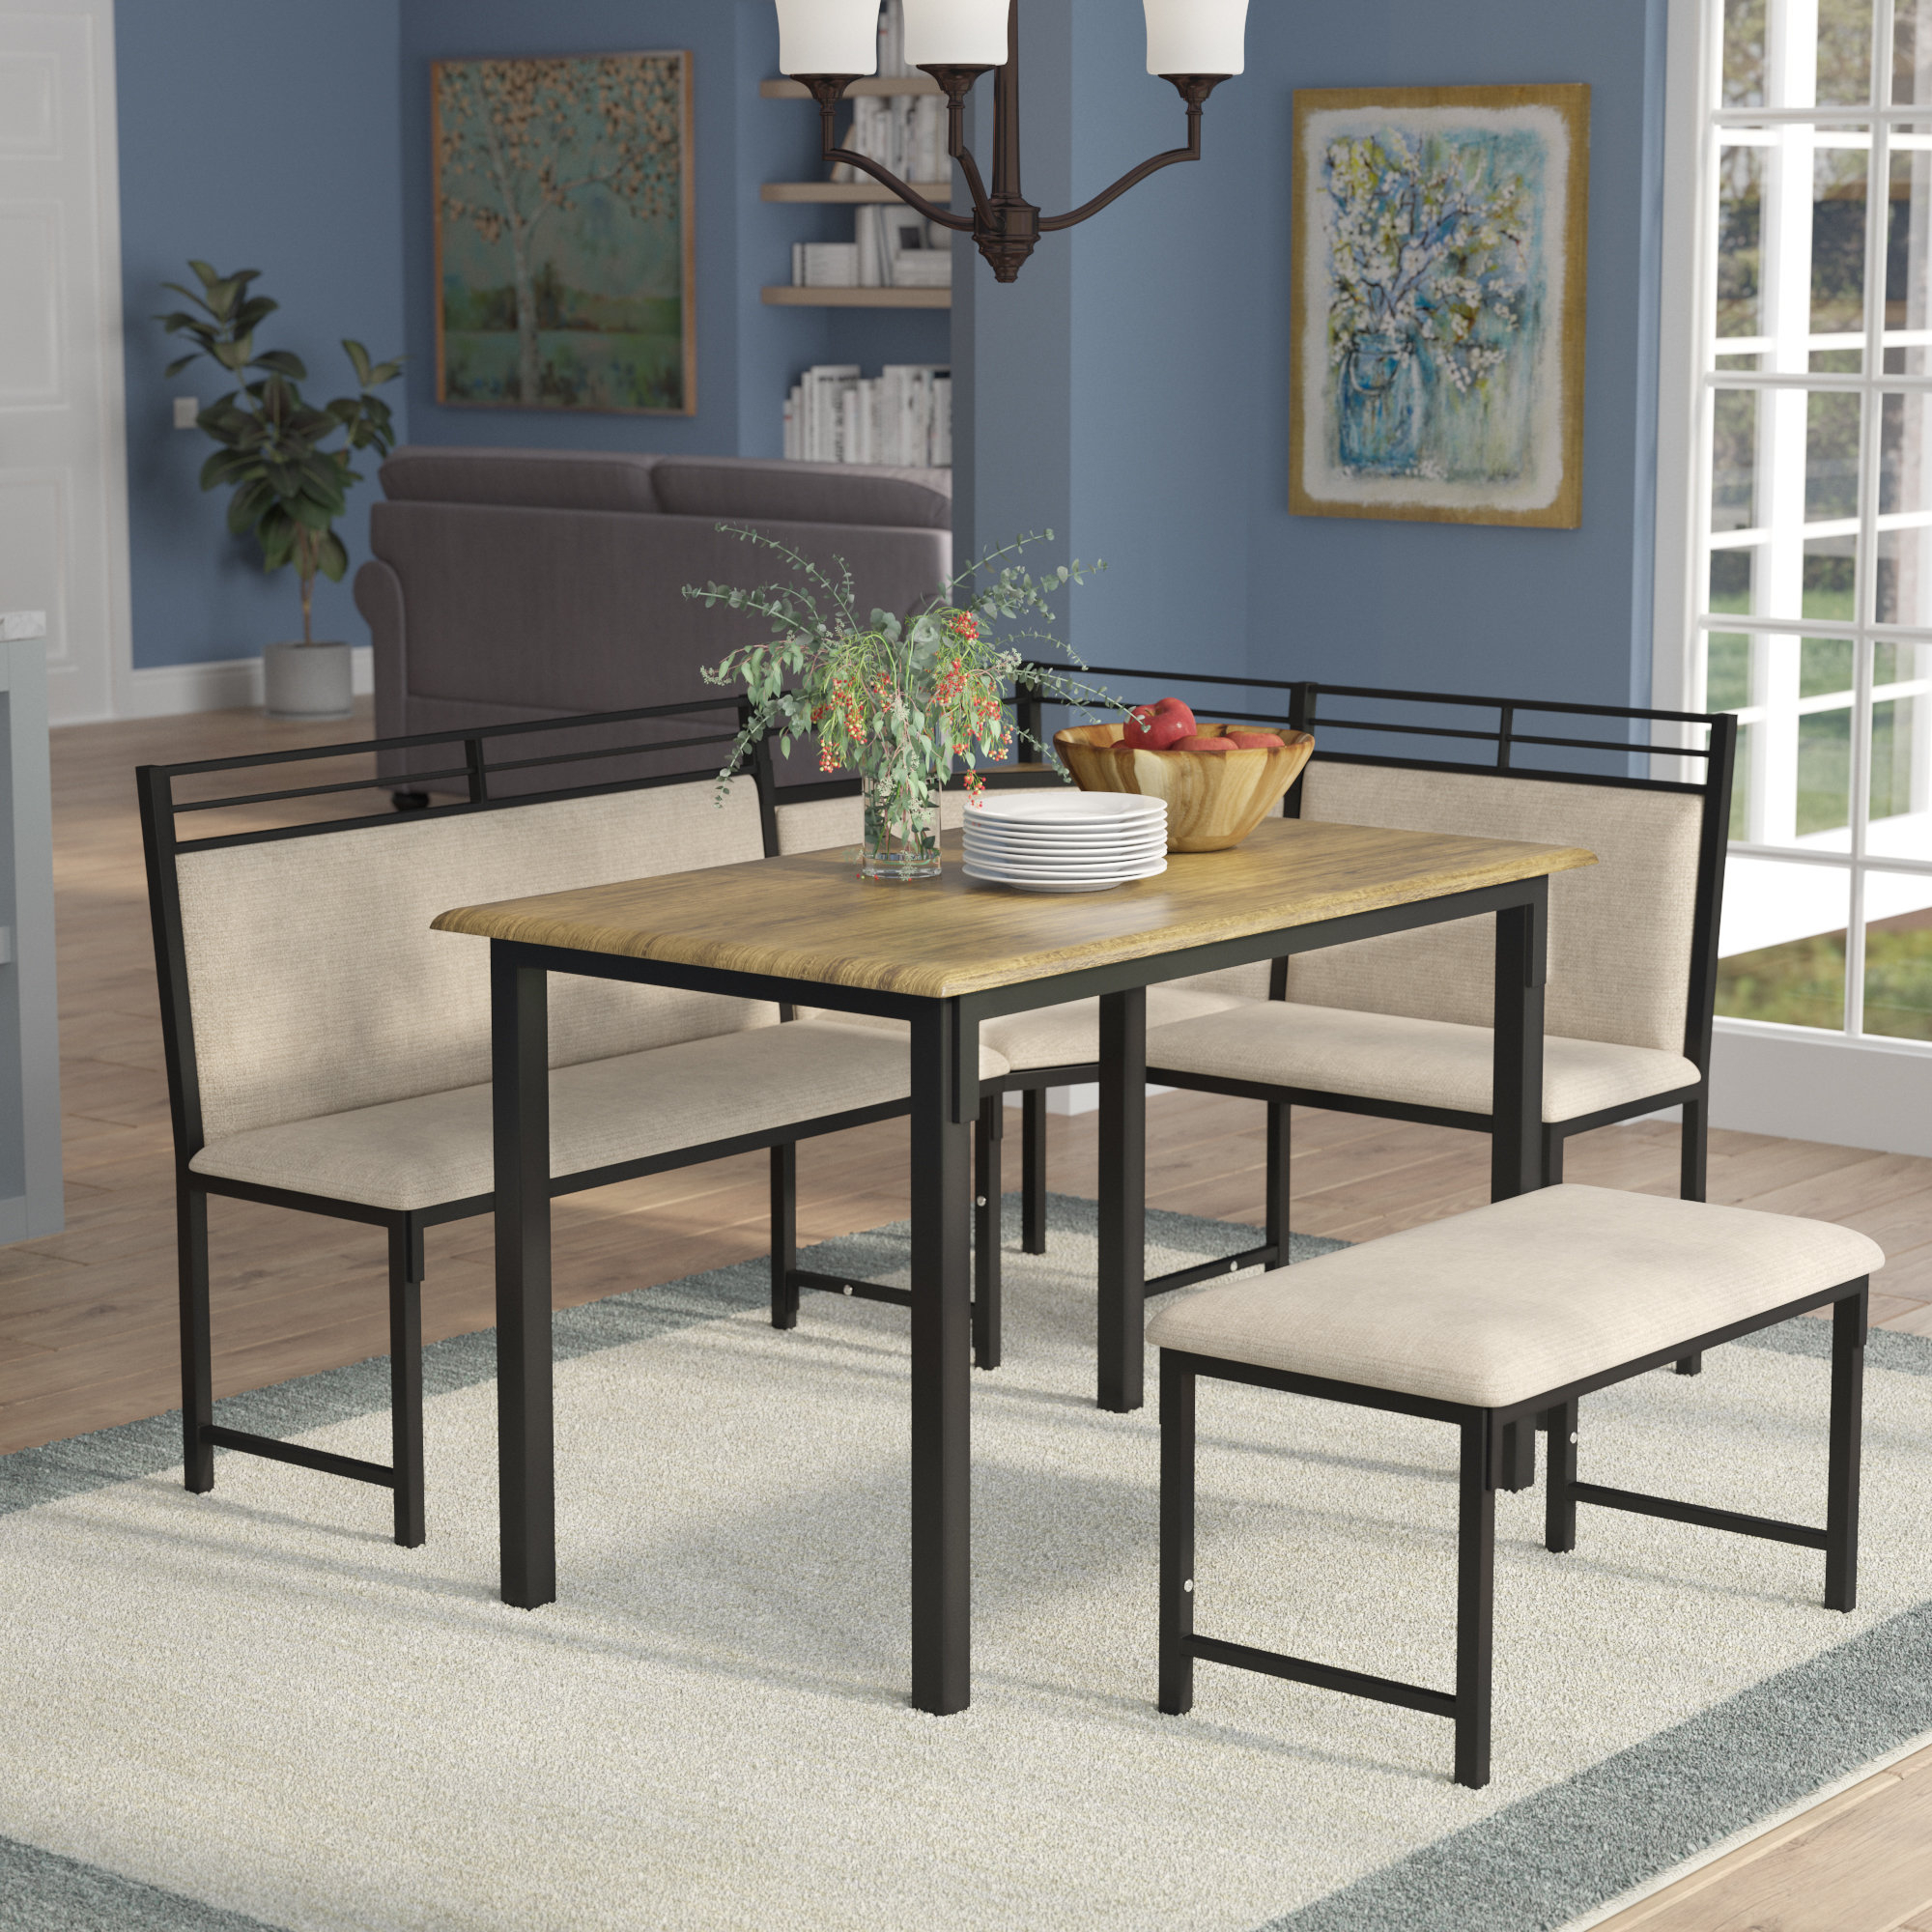 Moonachie Corner 3 Piece Dining Set Within Latest Isolde 3 Piece Dining Sets (Image 16 of 20)